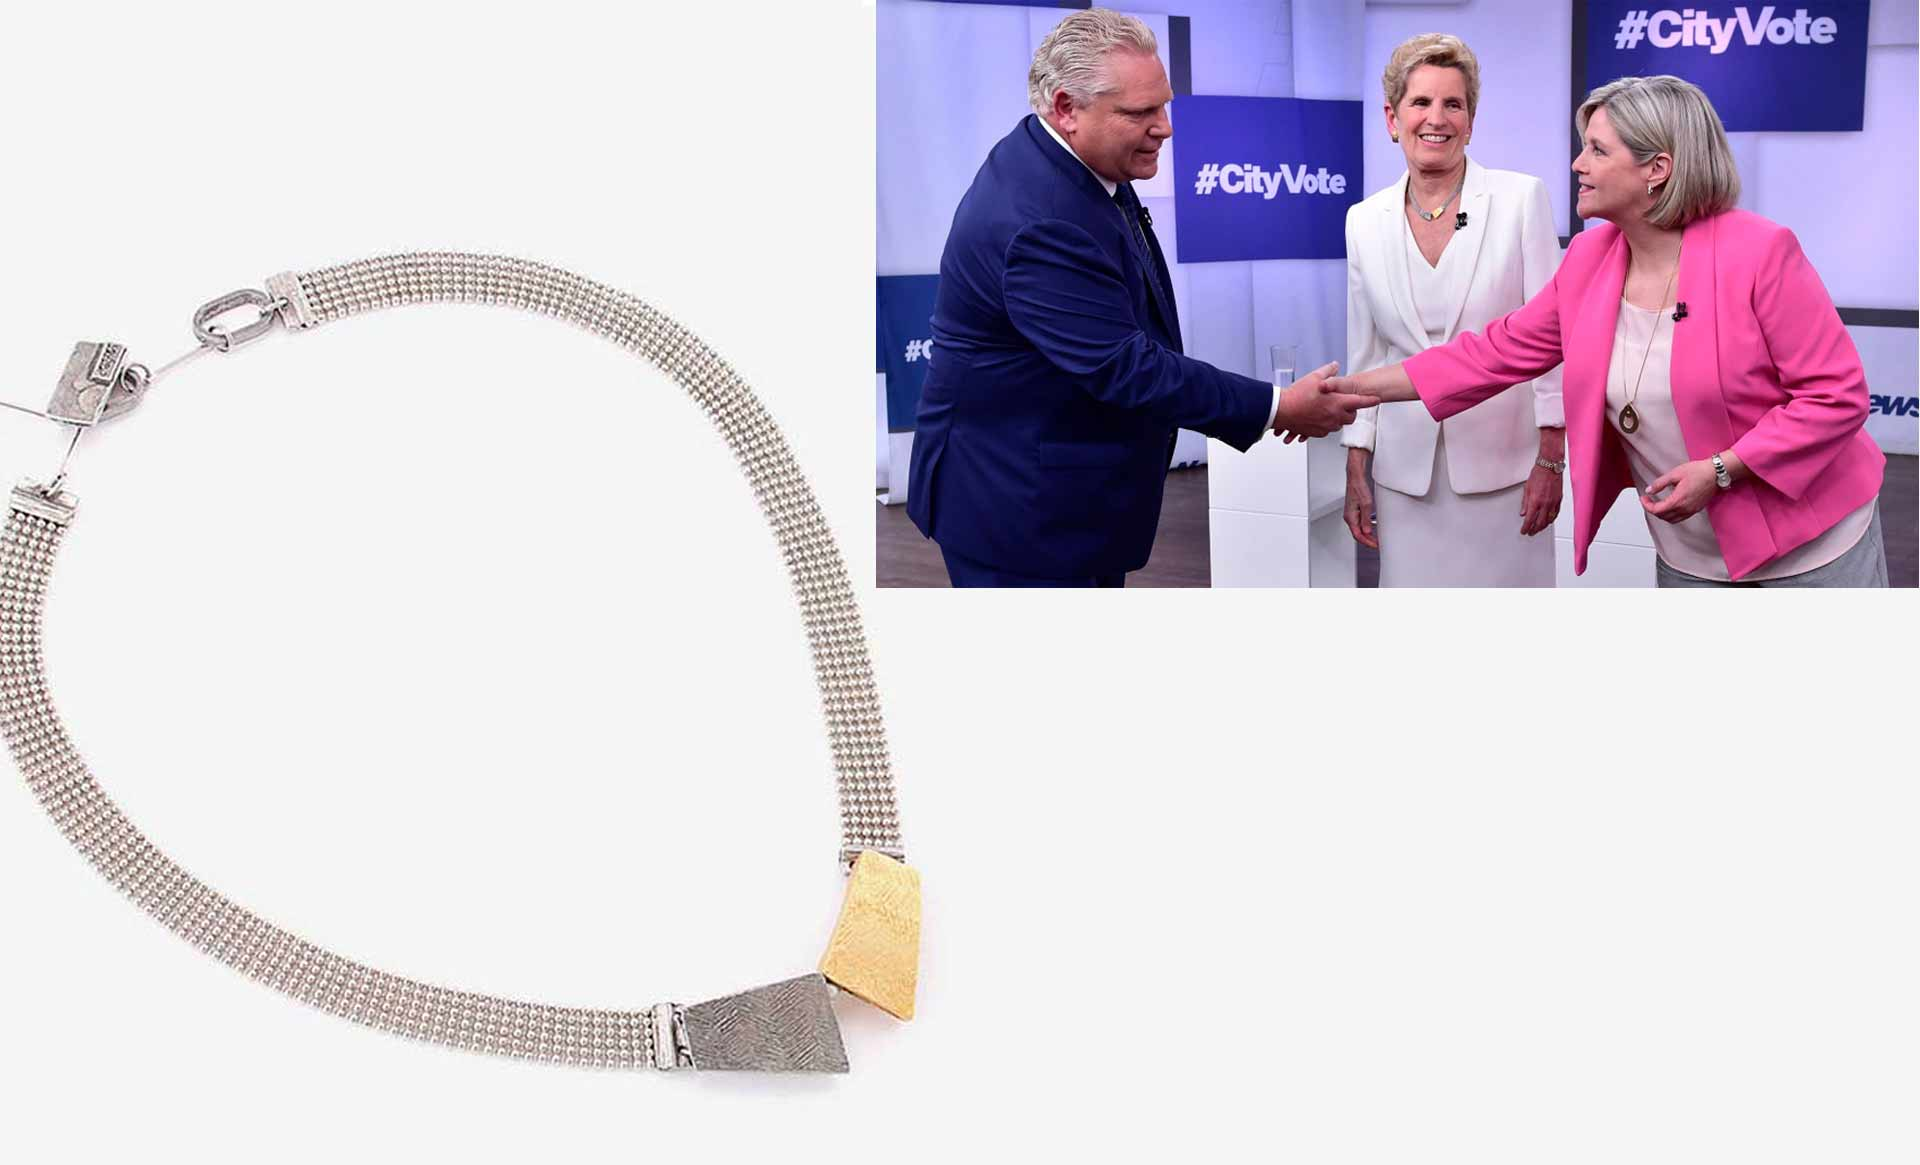 Kathleen Wynne wears the necklace Ève for the first electoral debate